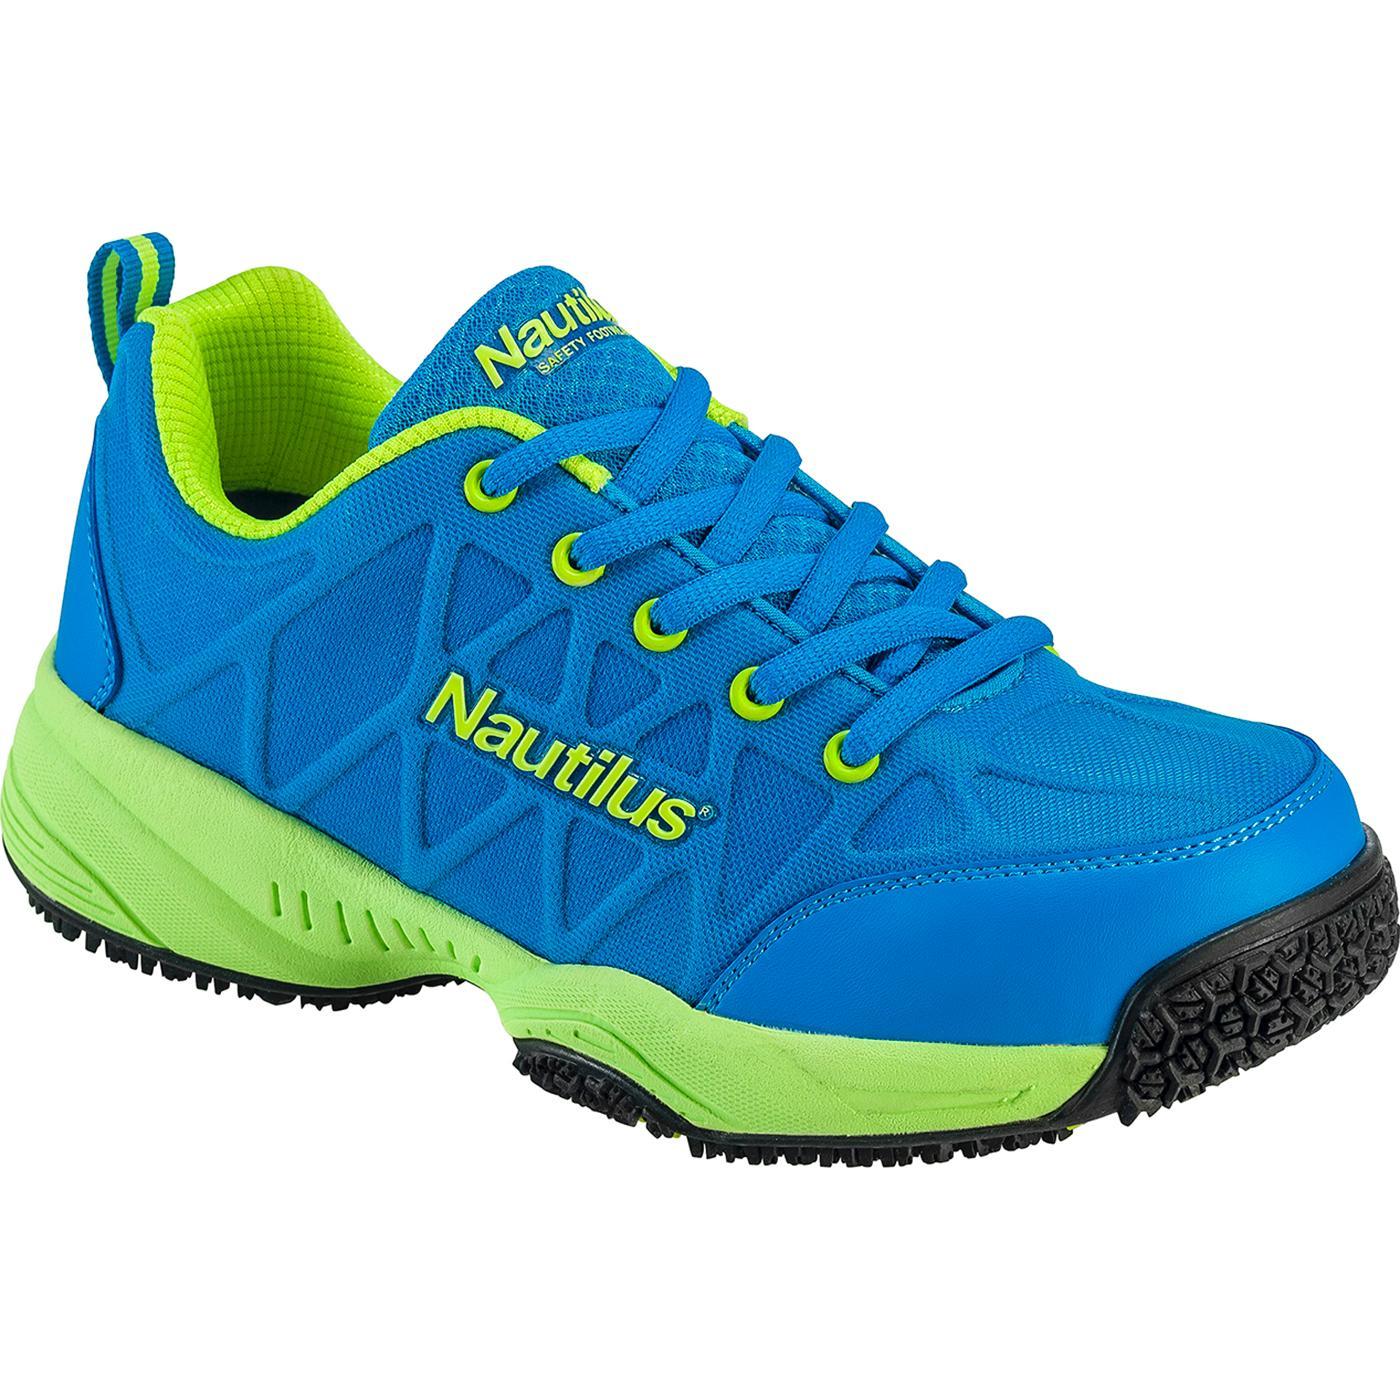 Nautilus Women s Composite Toe Slip-Resistant Work Athletic ShoeNautilus Women s  Composite Toe Slip-Resistant Work Athletic Shoe 7b82a999df